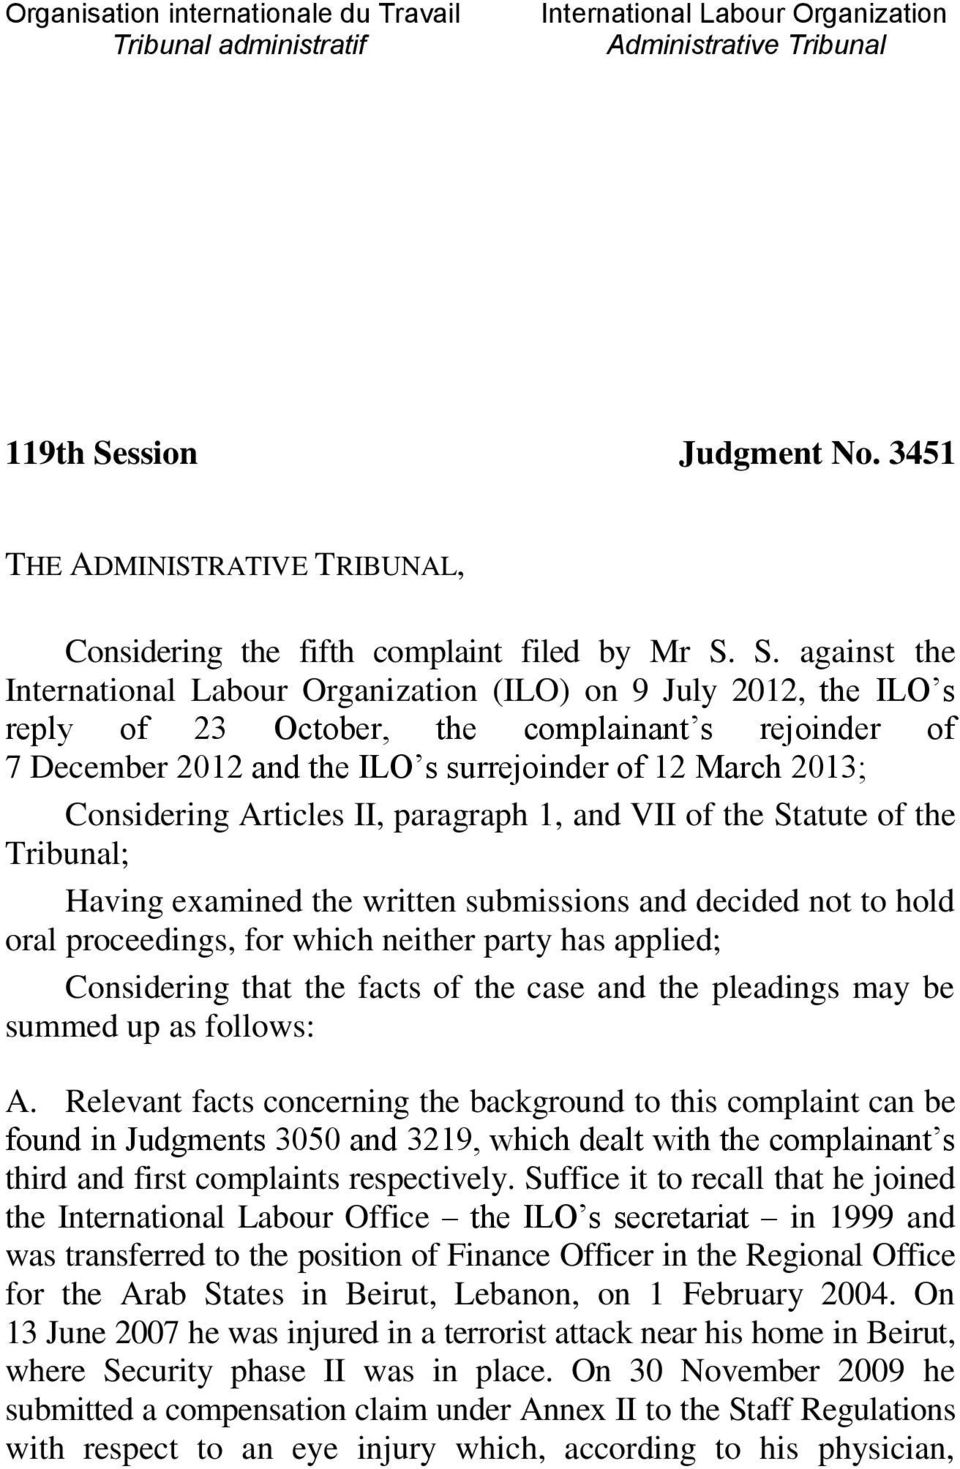 S. against the International Labour Organization (ILO) on 9 July 2012, the ILO s reply of 23 October, the complainant s rejoinder of 7 December 2012 and the ILO s surrejoinder of 12 March 2013;